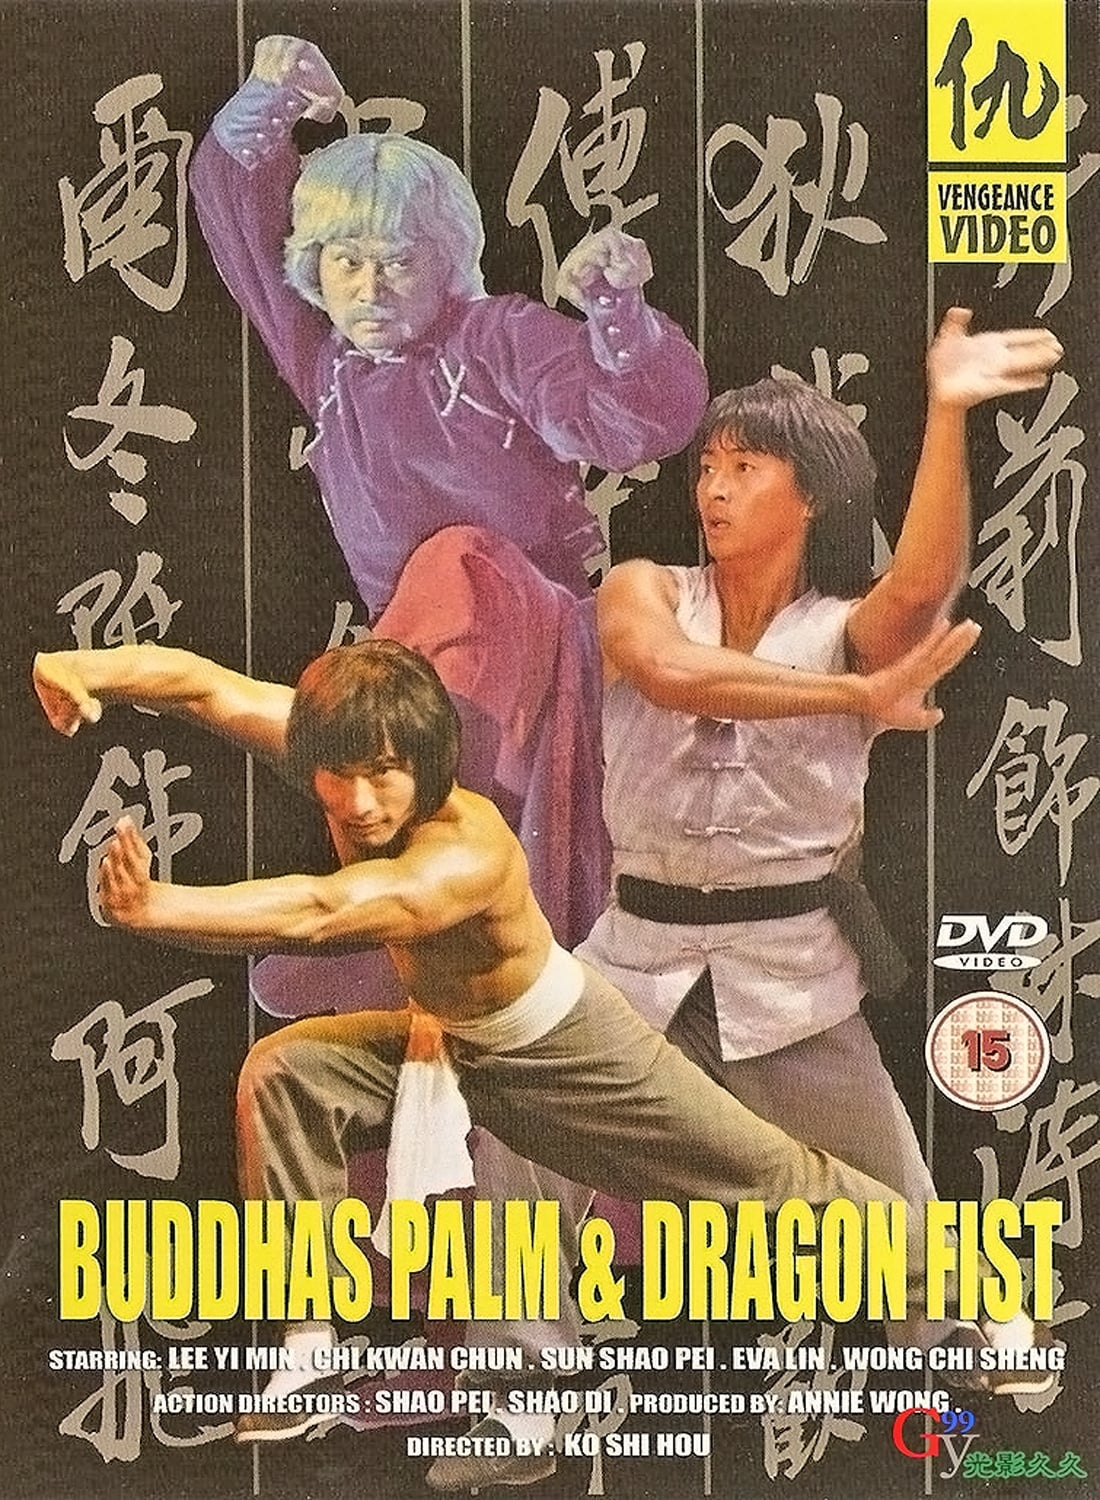 Buddha's palm and dragon fist torrent